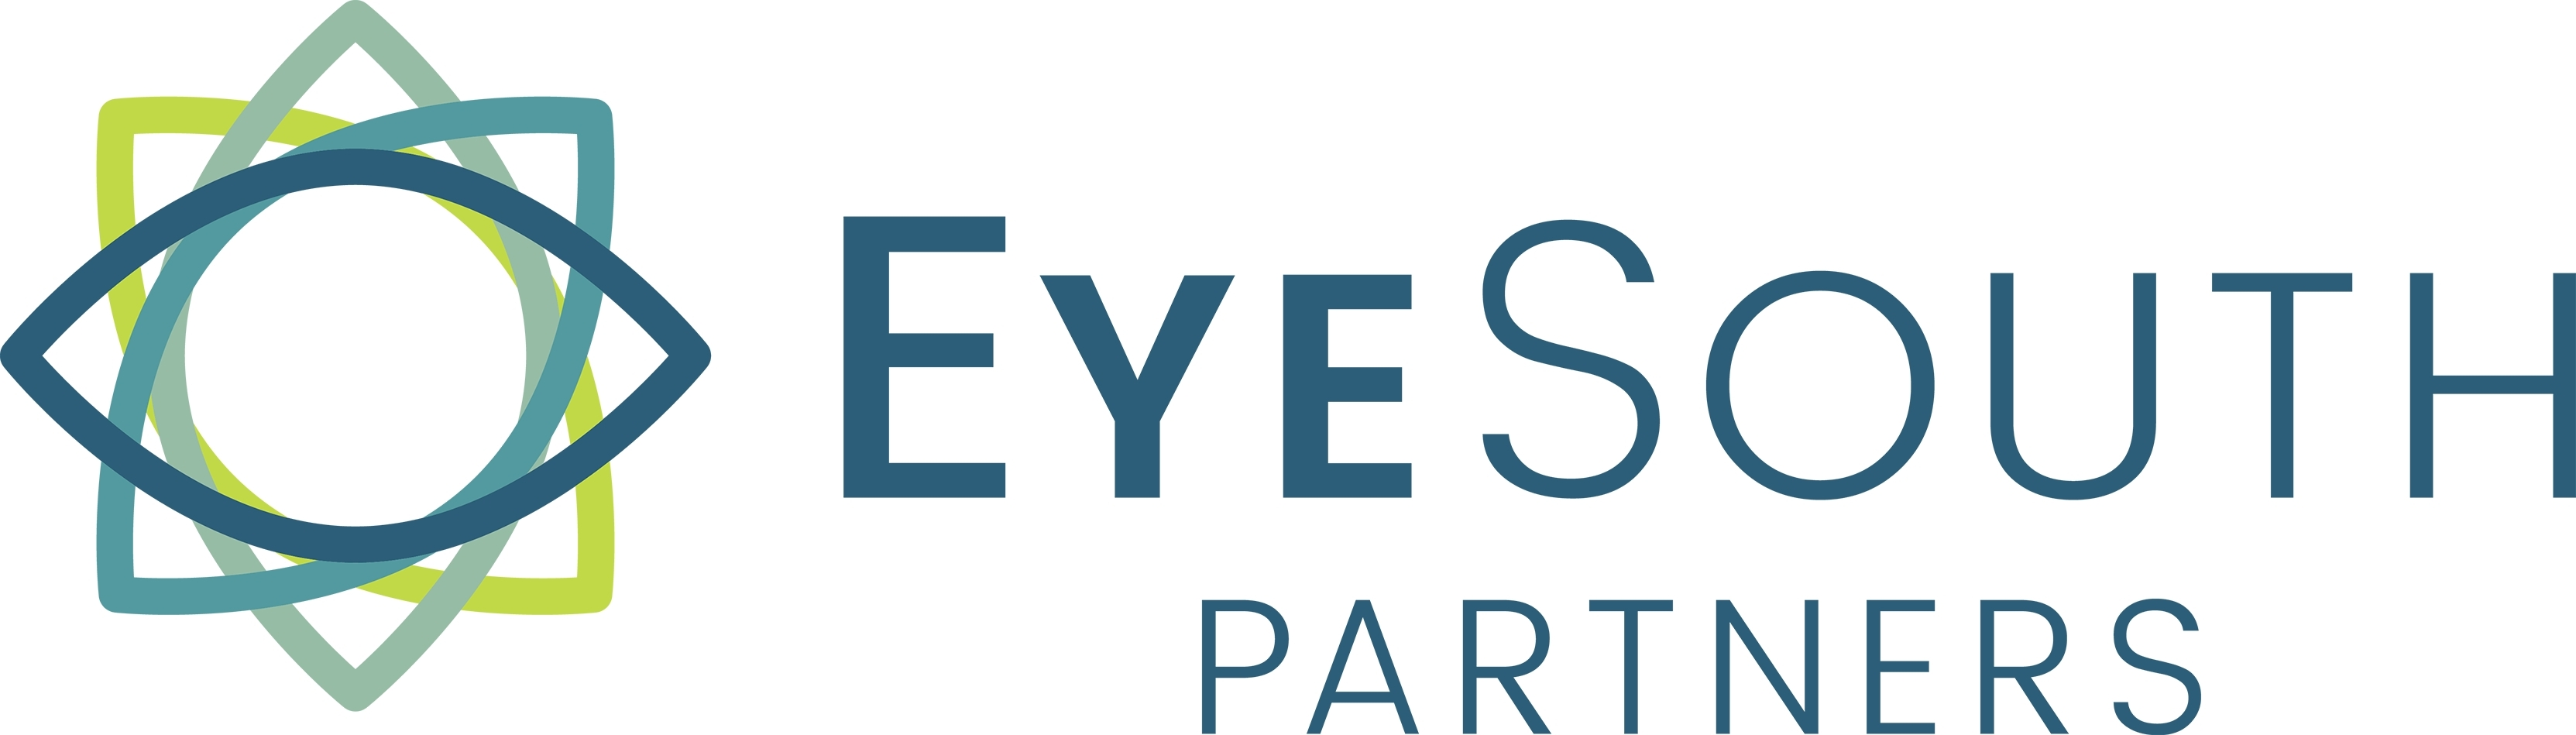 Eyesouth establishes a presence in south georgia and north florida eyesouth business development contact eyesouth partners charlie shreve vp of business development strategy charliereveeyesouthpartners altavistaventures Choice Image